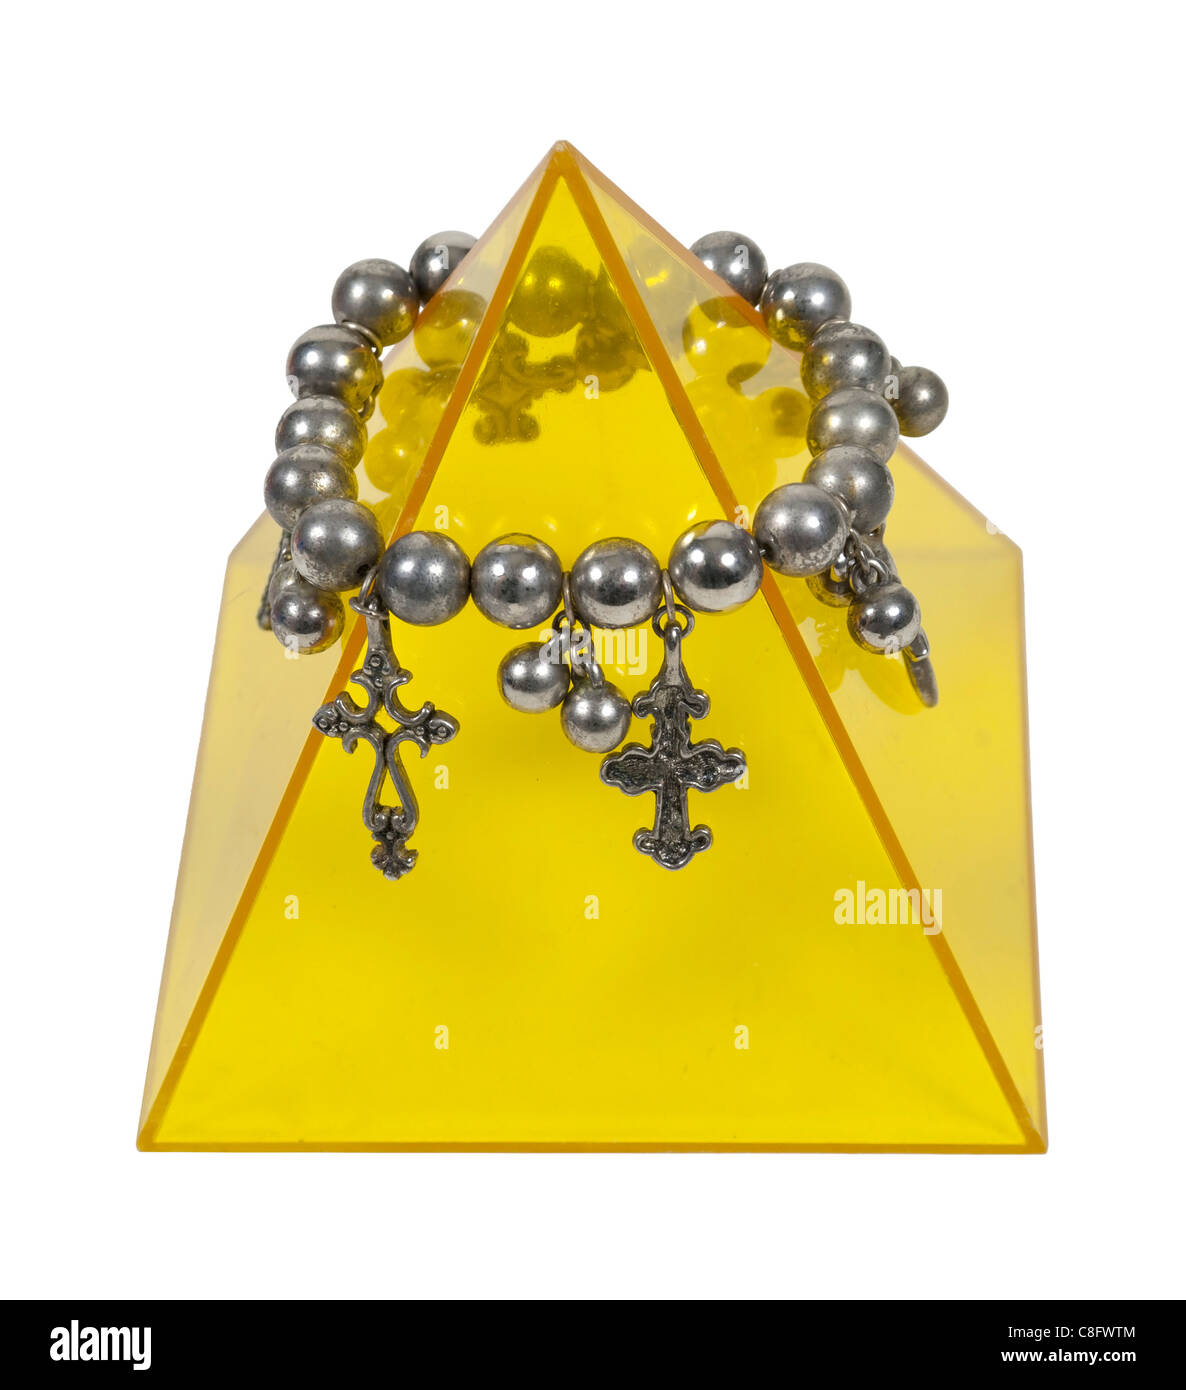 A yellow pyramid adorned with silver crosses - path included - Stock Image